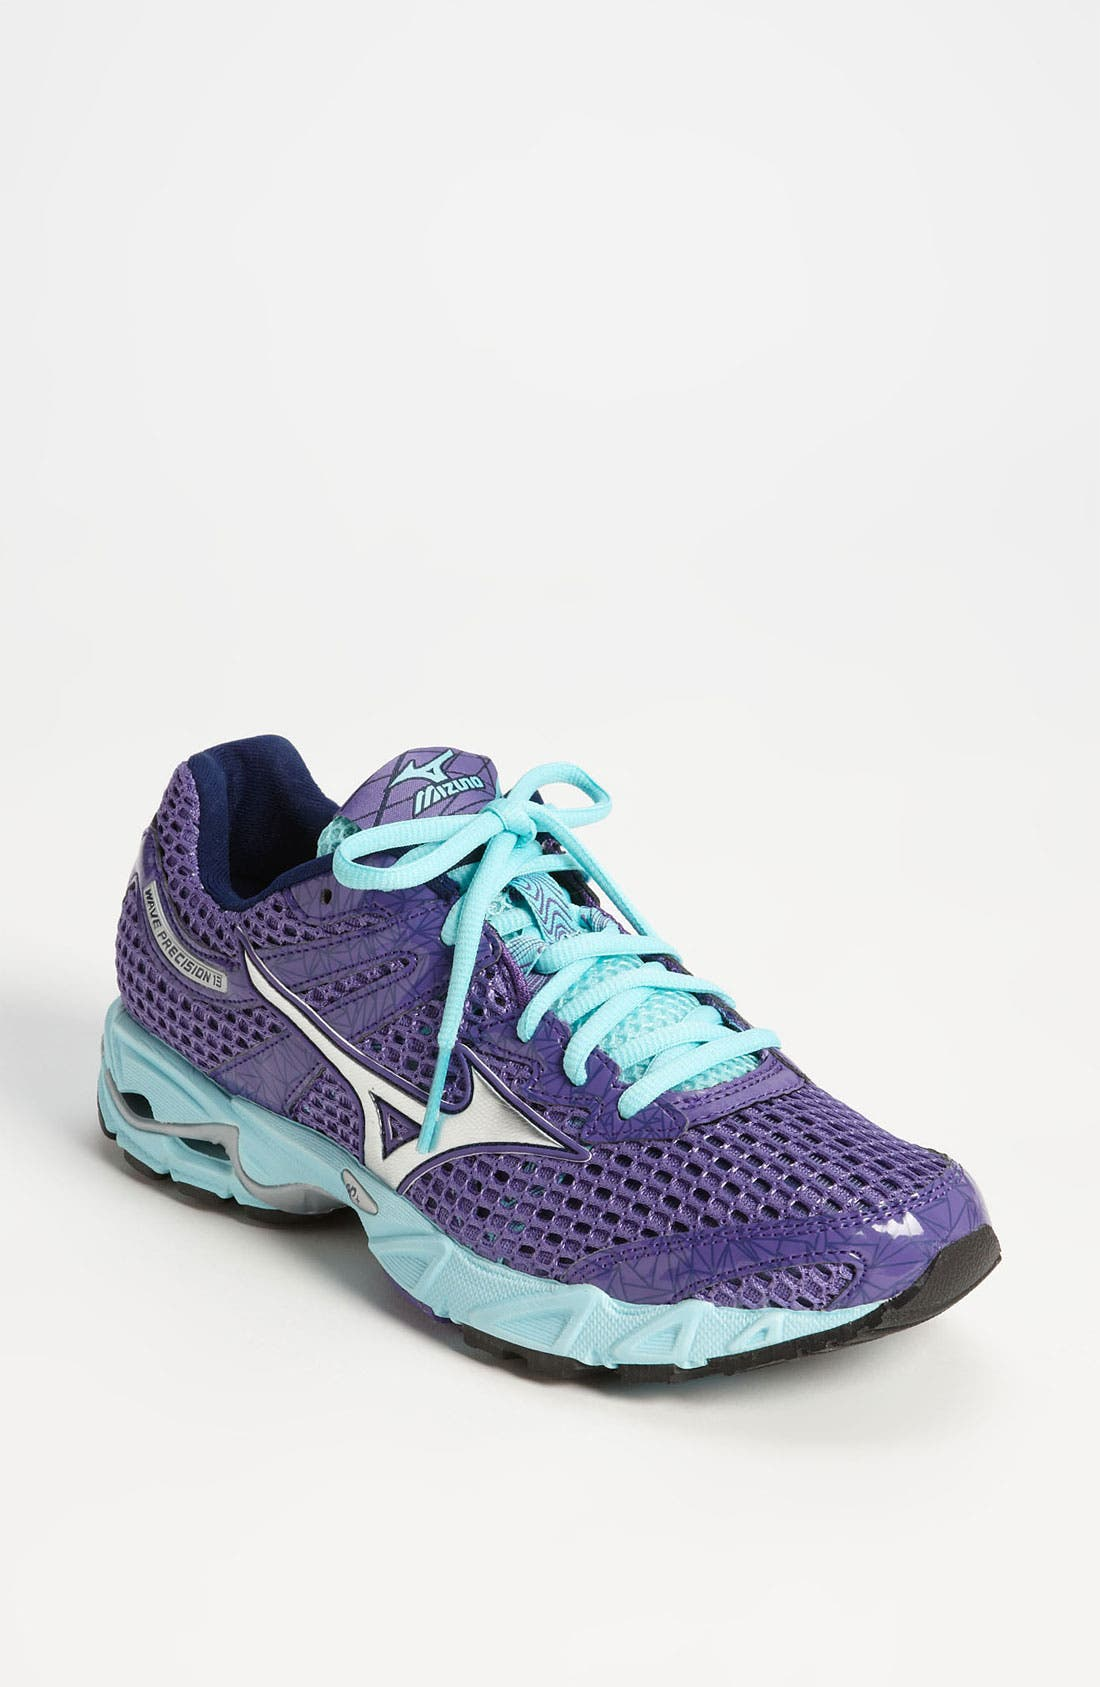 Main Image - Mizuno 'Wave Precision 13' Running Shoe (Women)(Retail Price: $109.95)